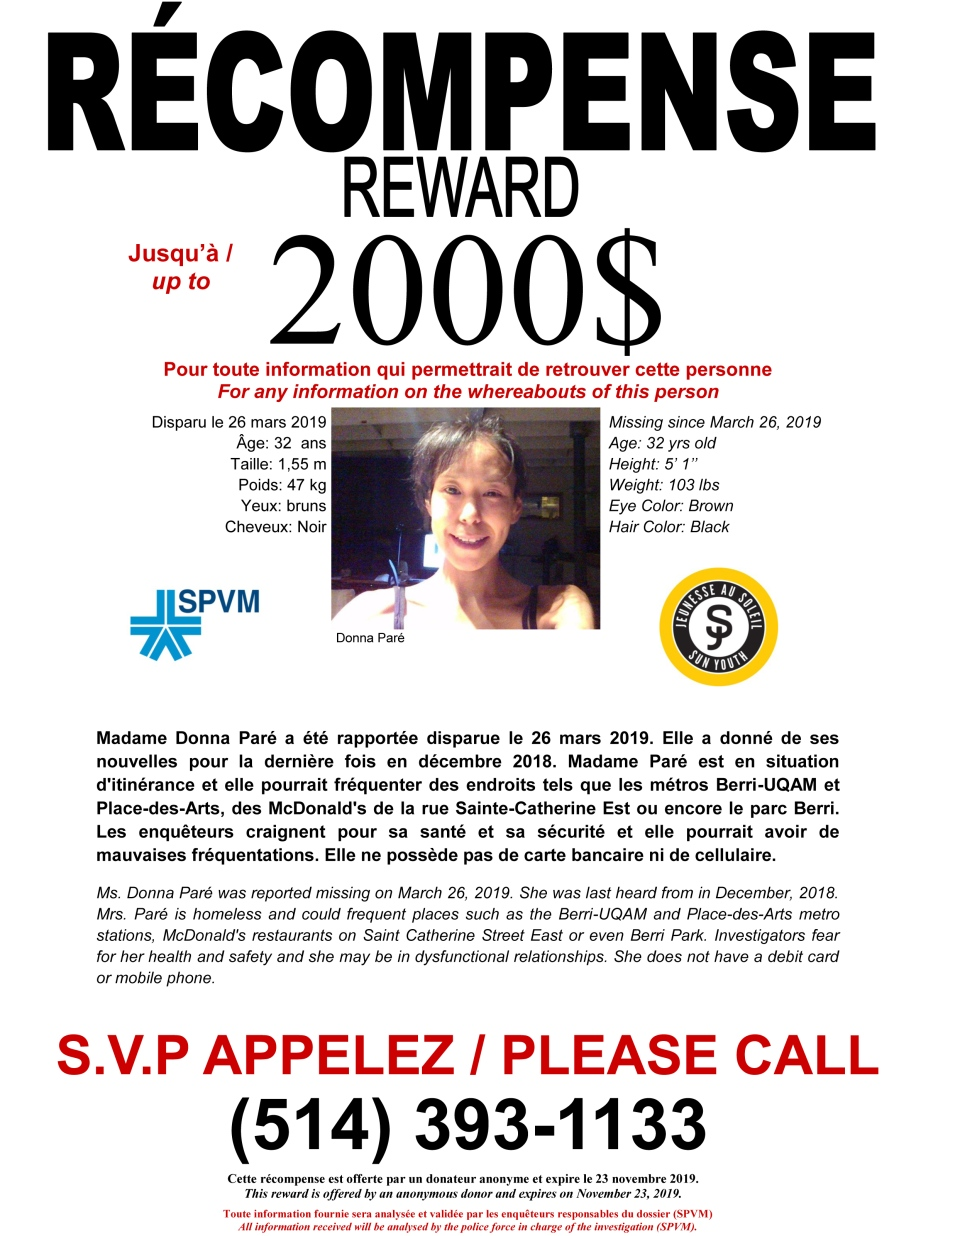 A $2,000 reward is being offered for information about Donna Paré